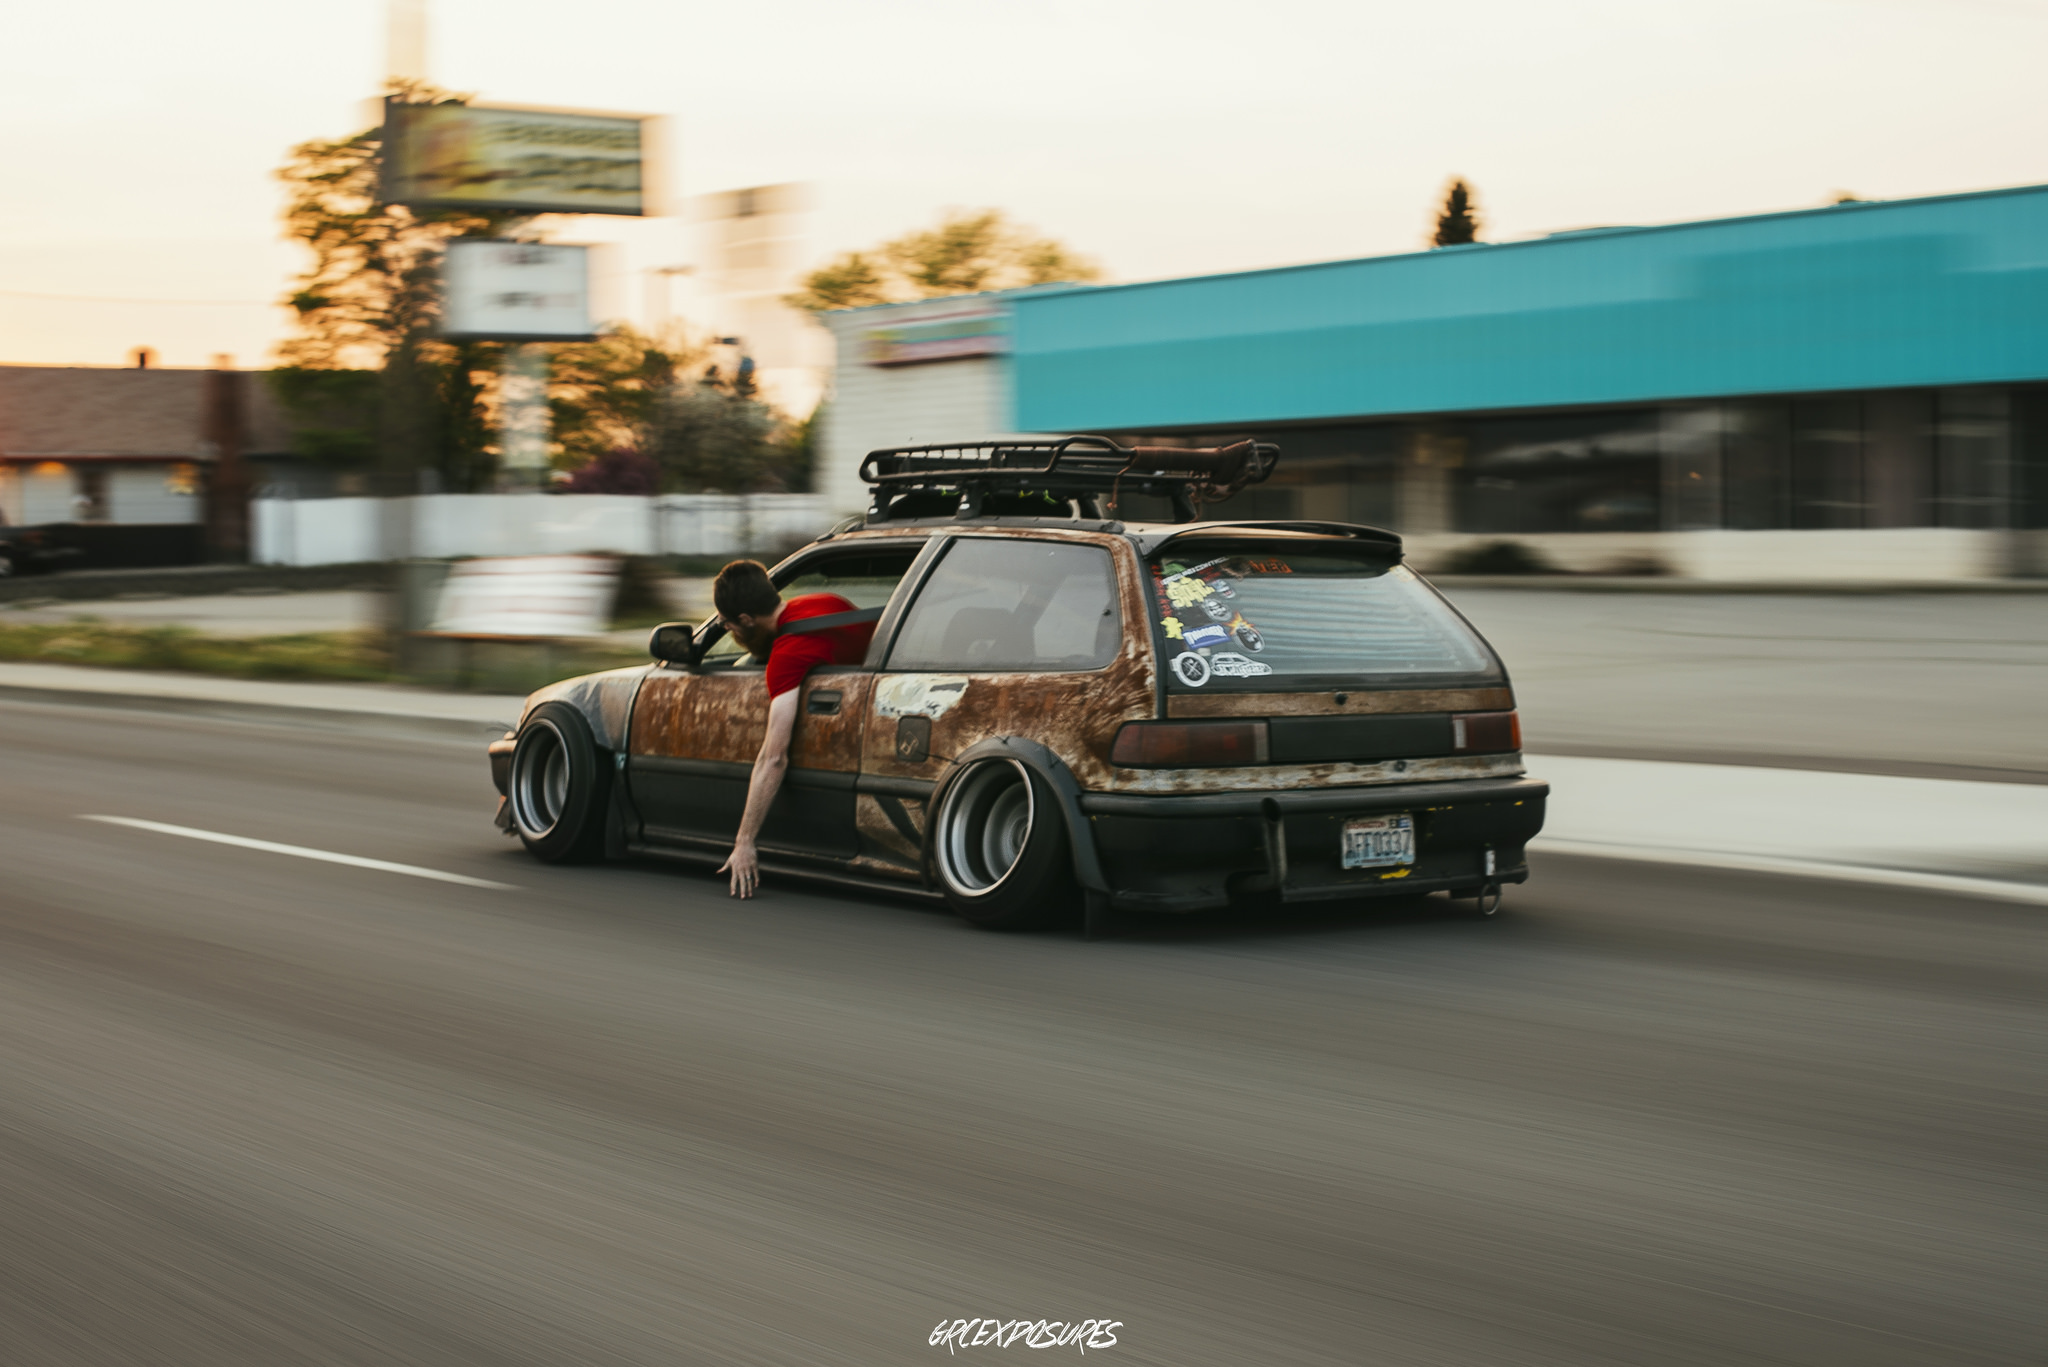 What Do You Guys Think Of This Civic Ef9